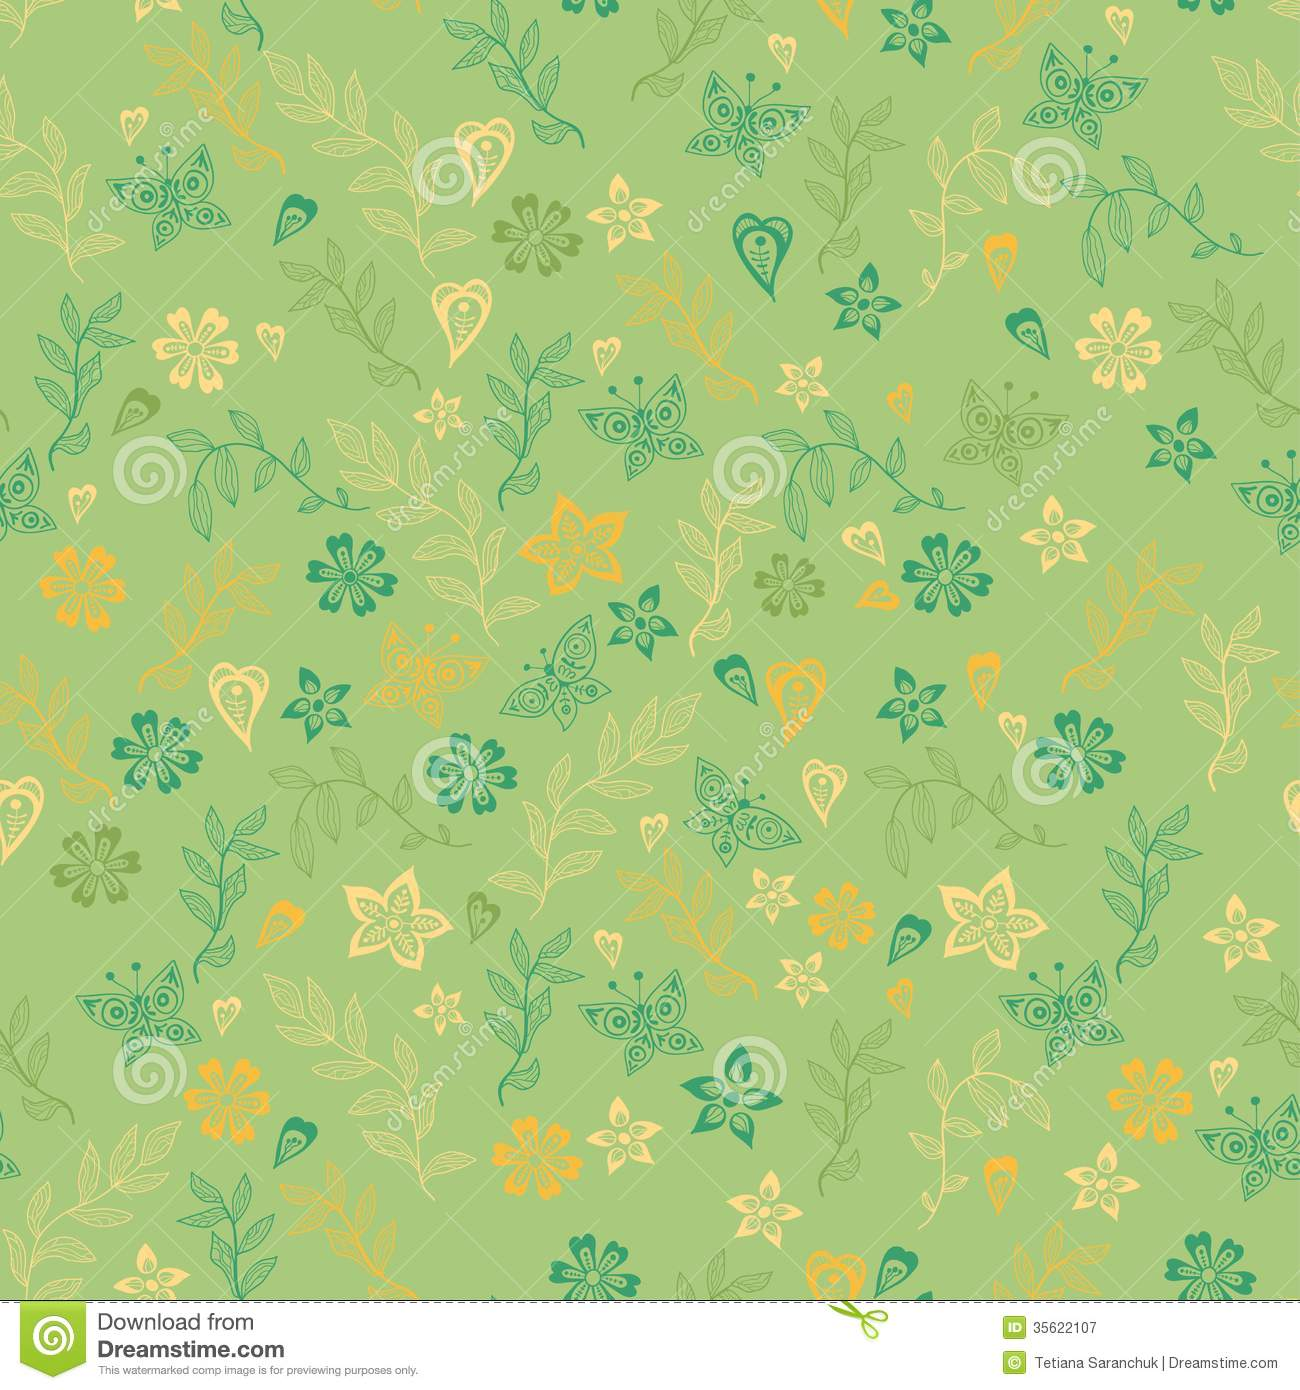 Spring Flower With Green Background Vector 02 Free Download: Seamless Flower Pattern Background In Vector Stock Vector